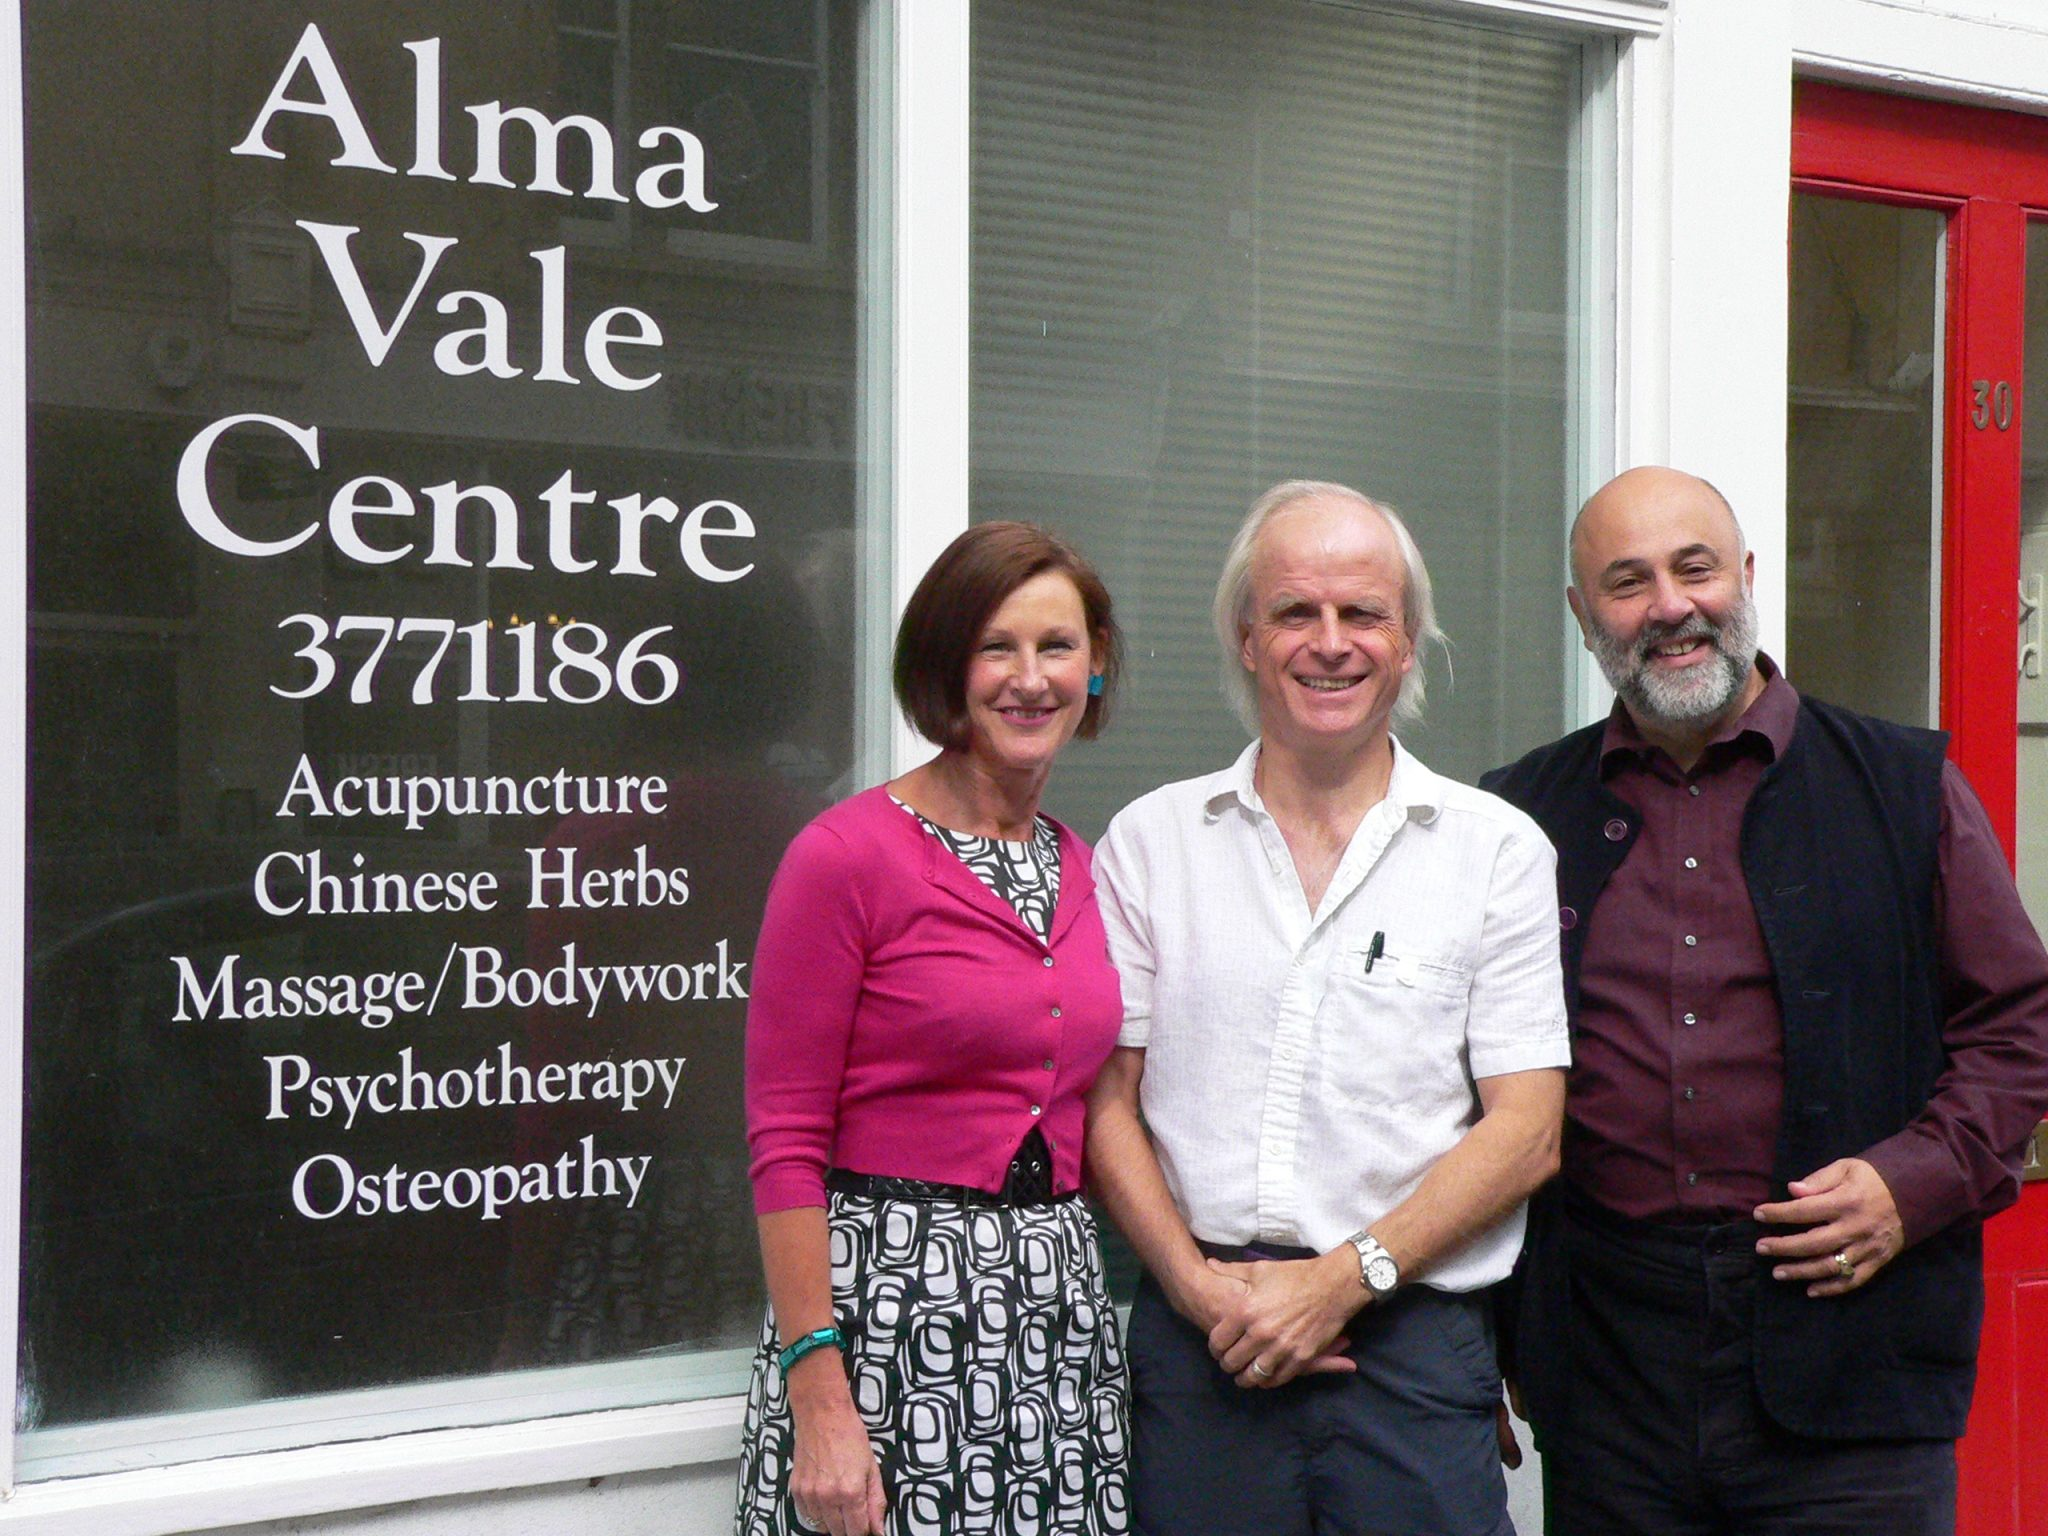 Celebrating 15 Years of the Alma Vale Centre